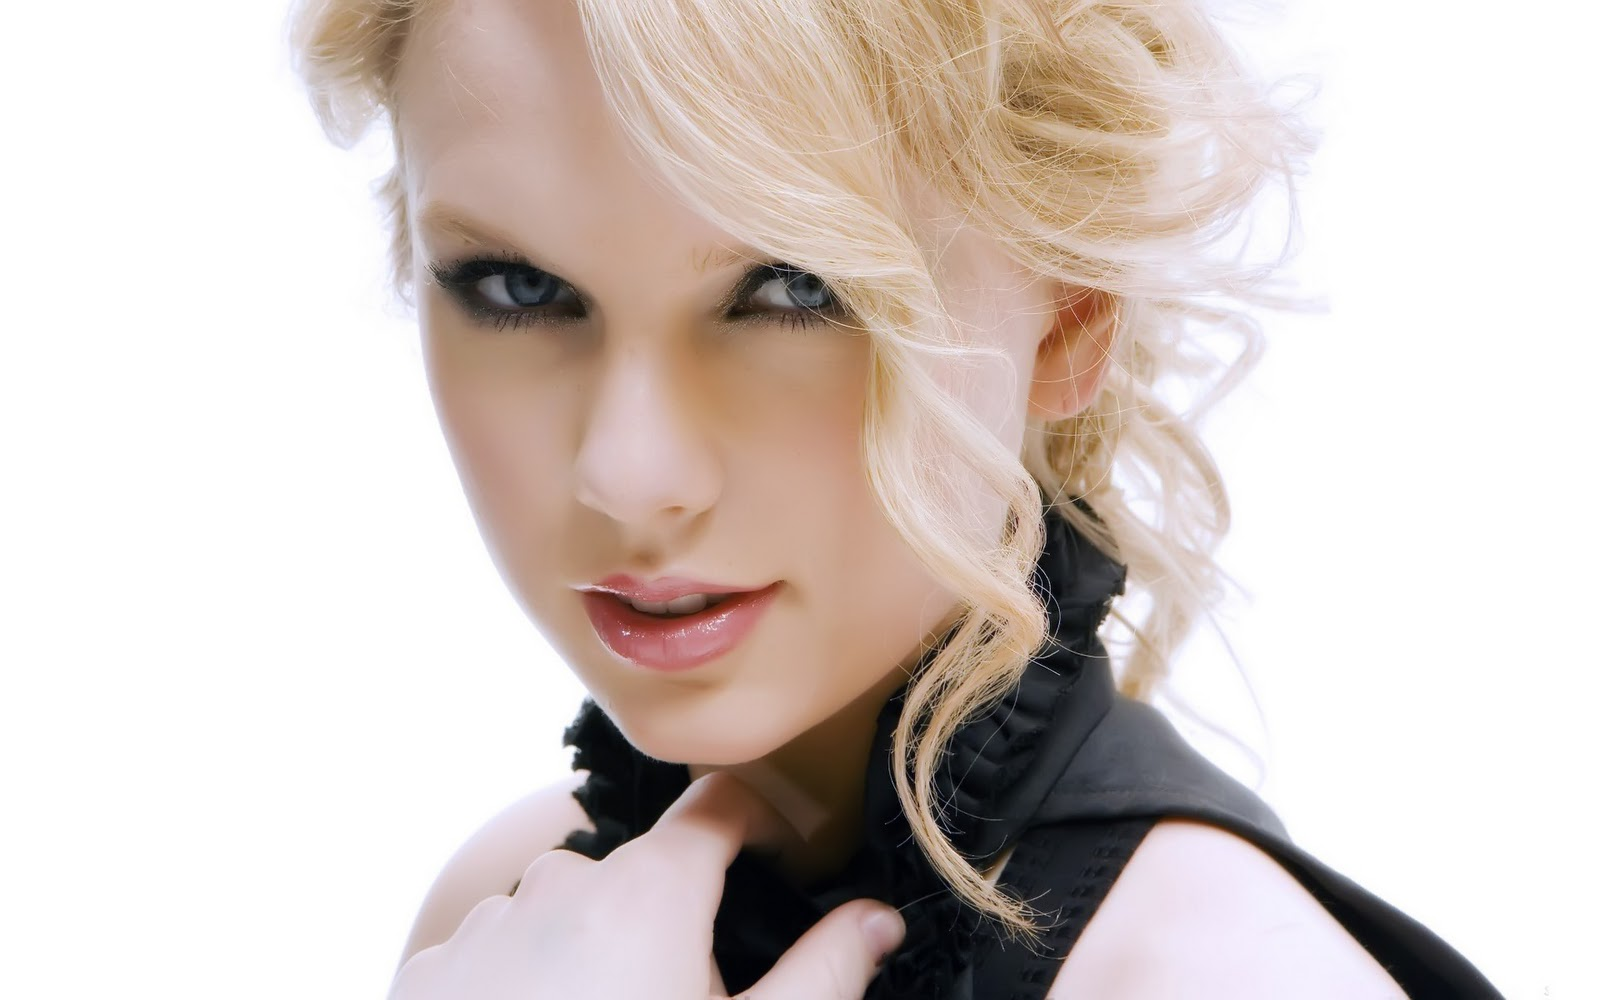 wonderful taylor swift desktop free hd background mobile cute smile look